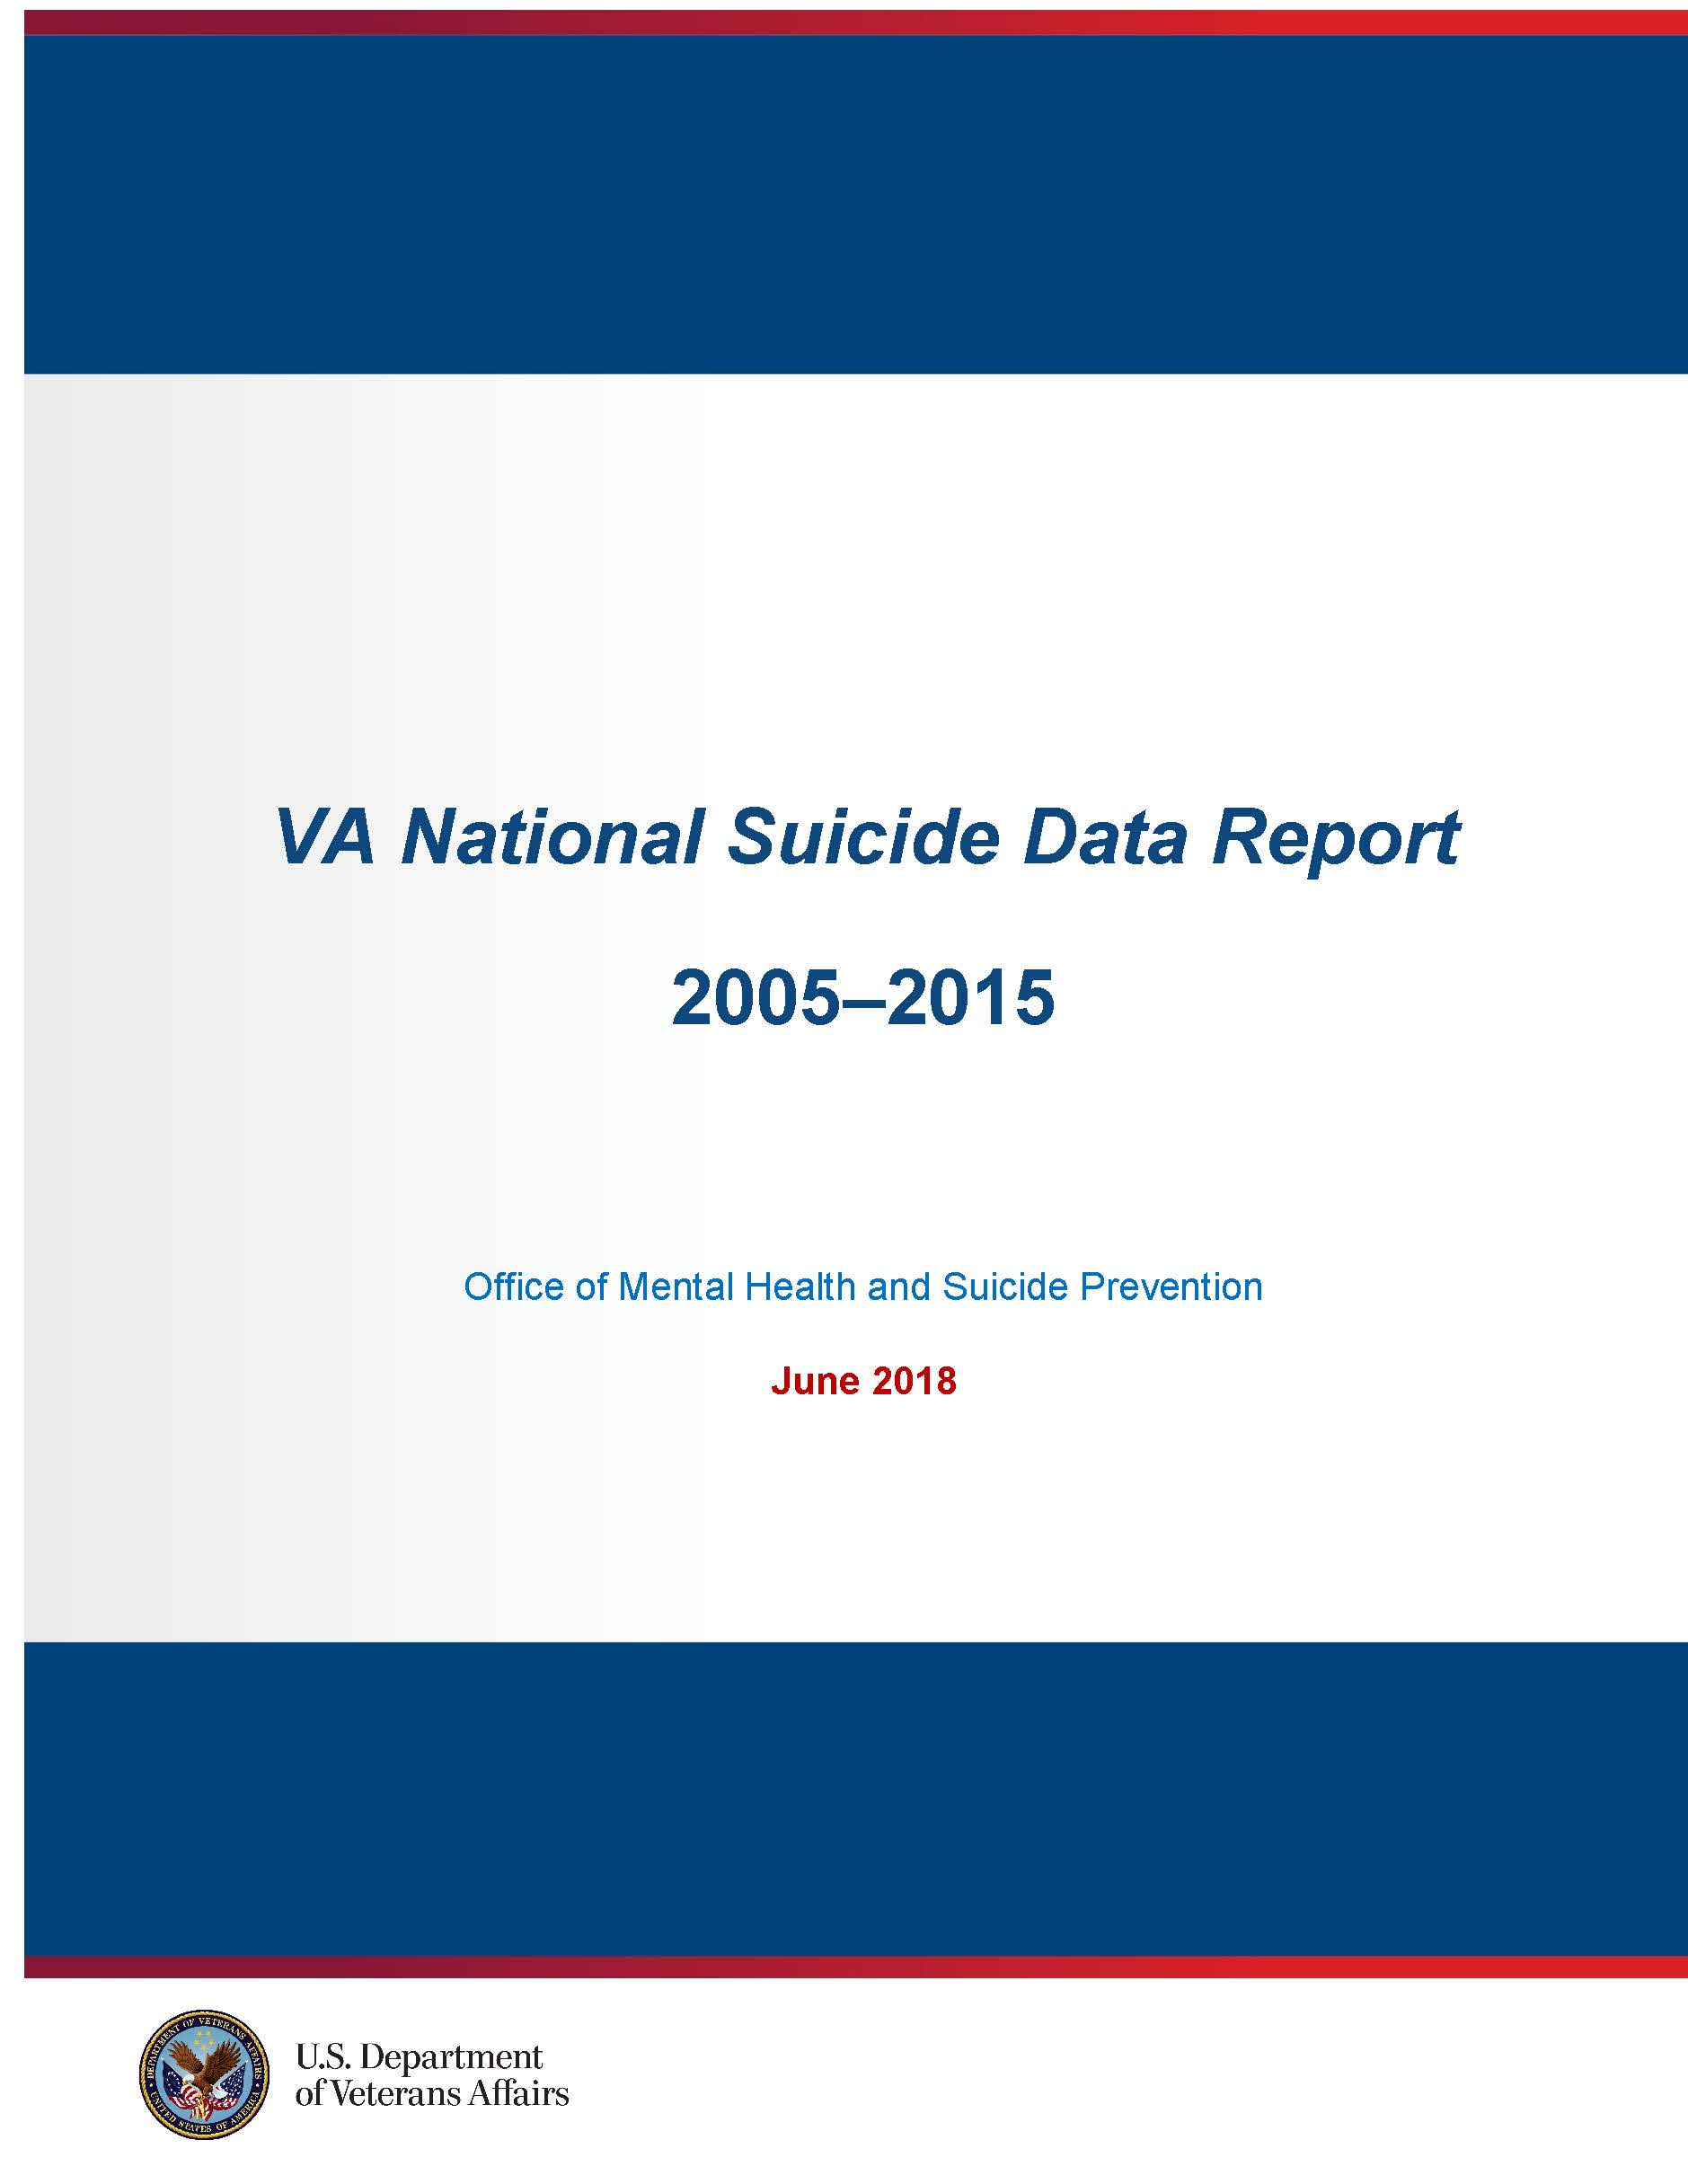 OMHSP National Suicide Data Report- Cover